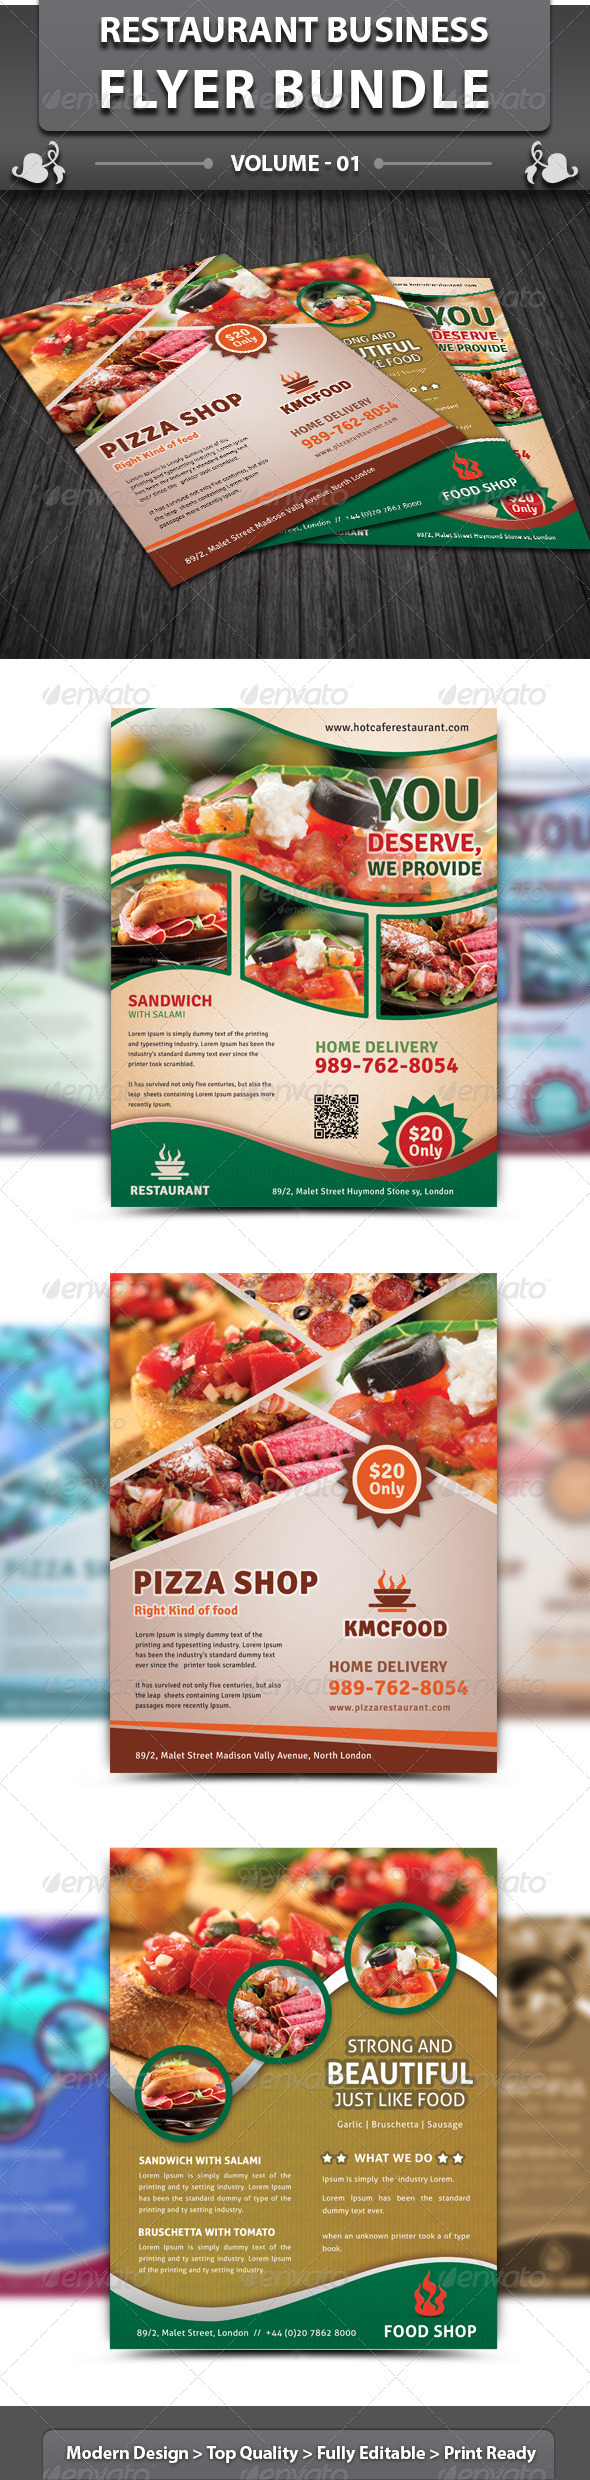 Restaurant Business Flyer | Bundle 1 - Restaurant Flyers